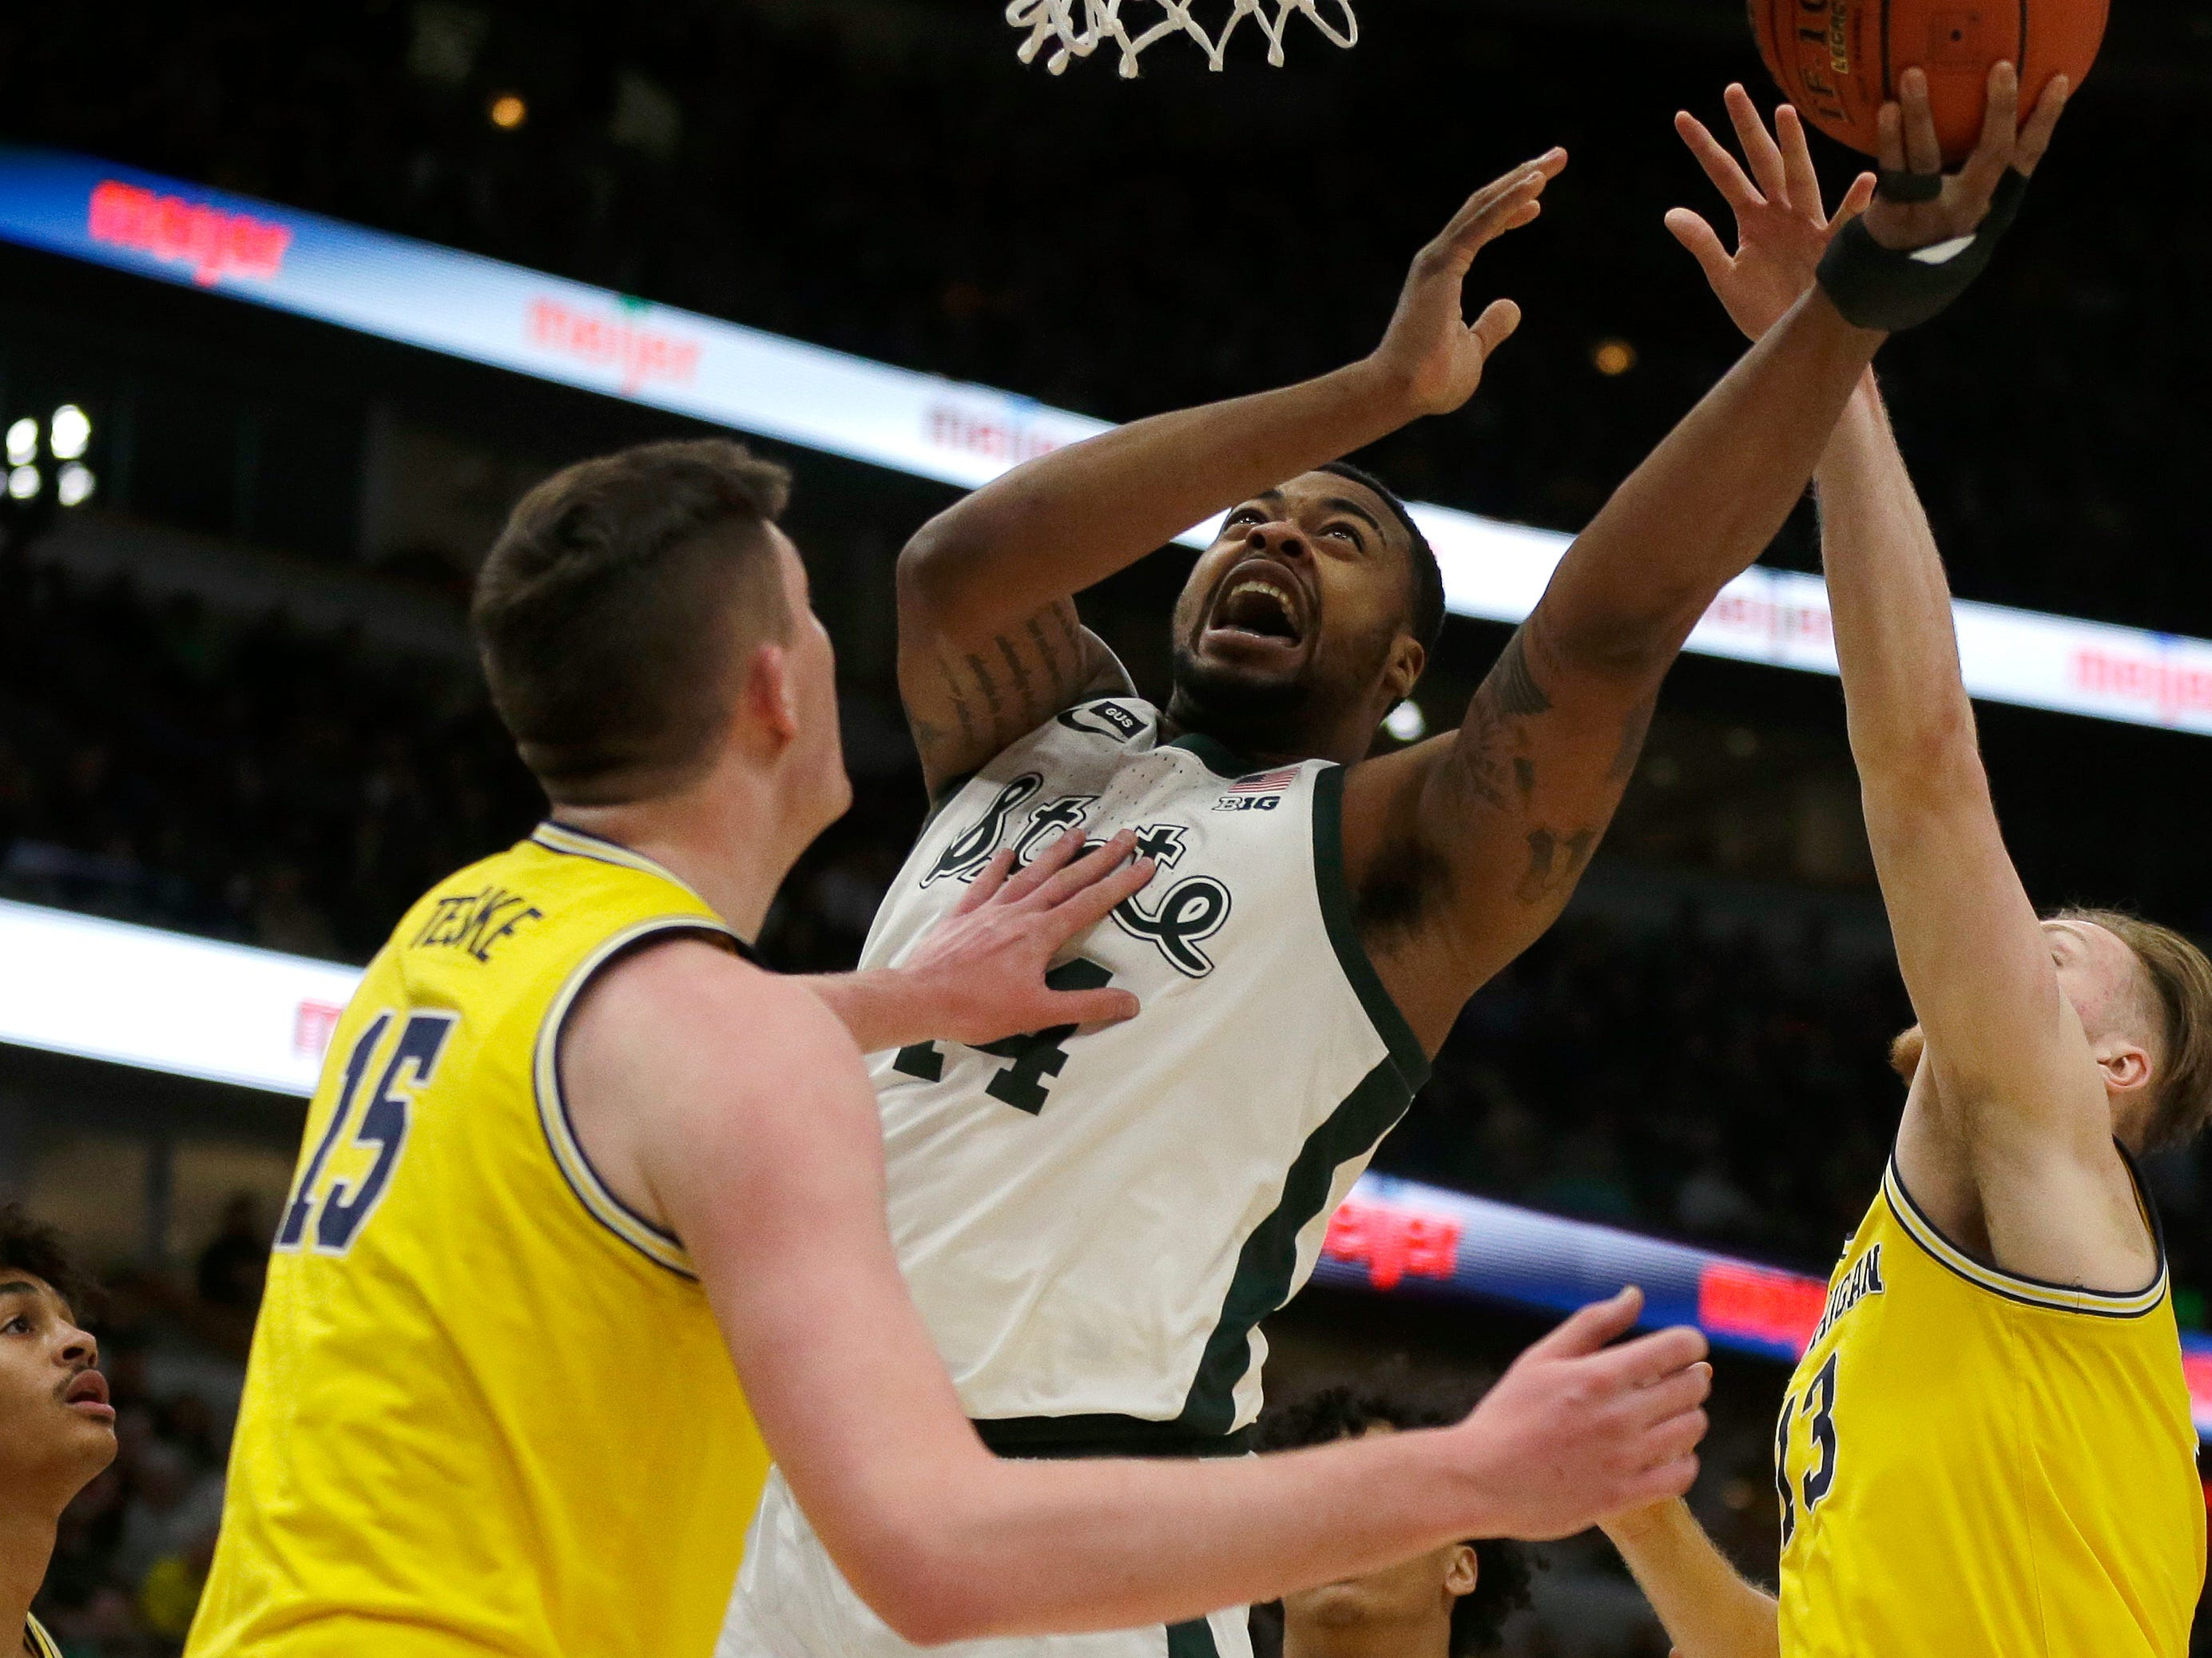 Michigan State's Nick Ward (44) goes up for a shot against Michigan's Jon Teske (15) and Ignas Brazdeikis (13) during the first half of an NCAA college basketball championship game in the Big Ten Conference tournament, Sunday, March 17, 2019, in Chicago.